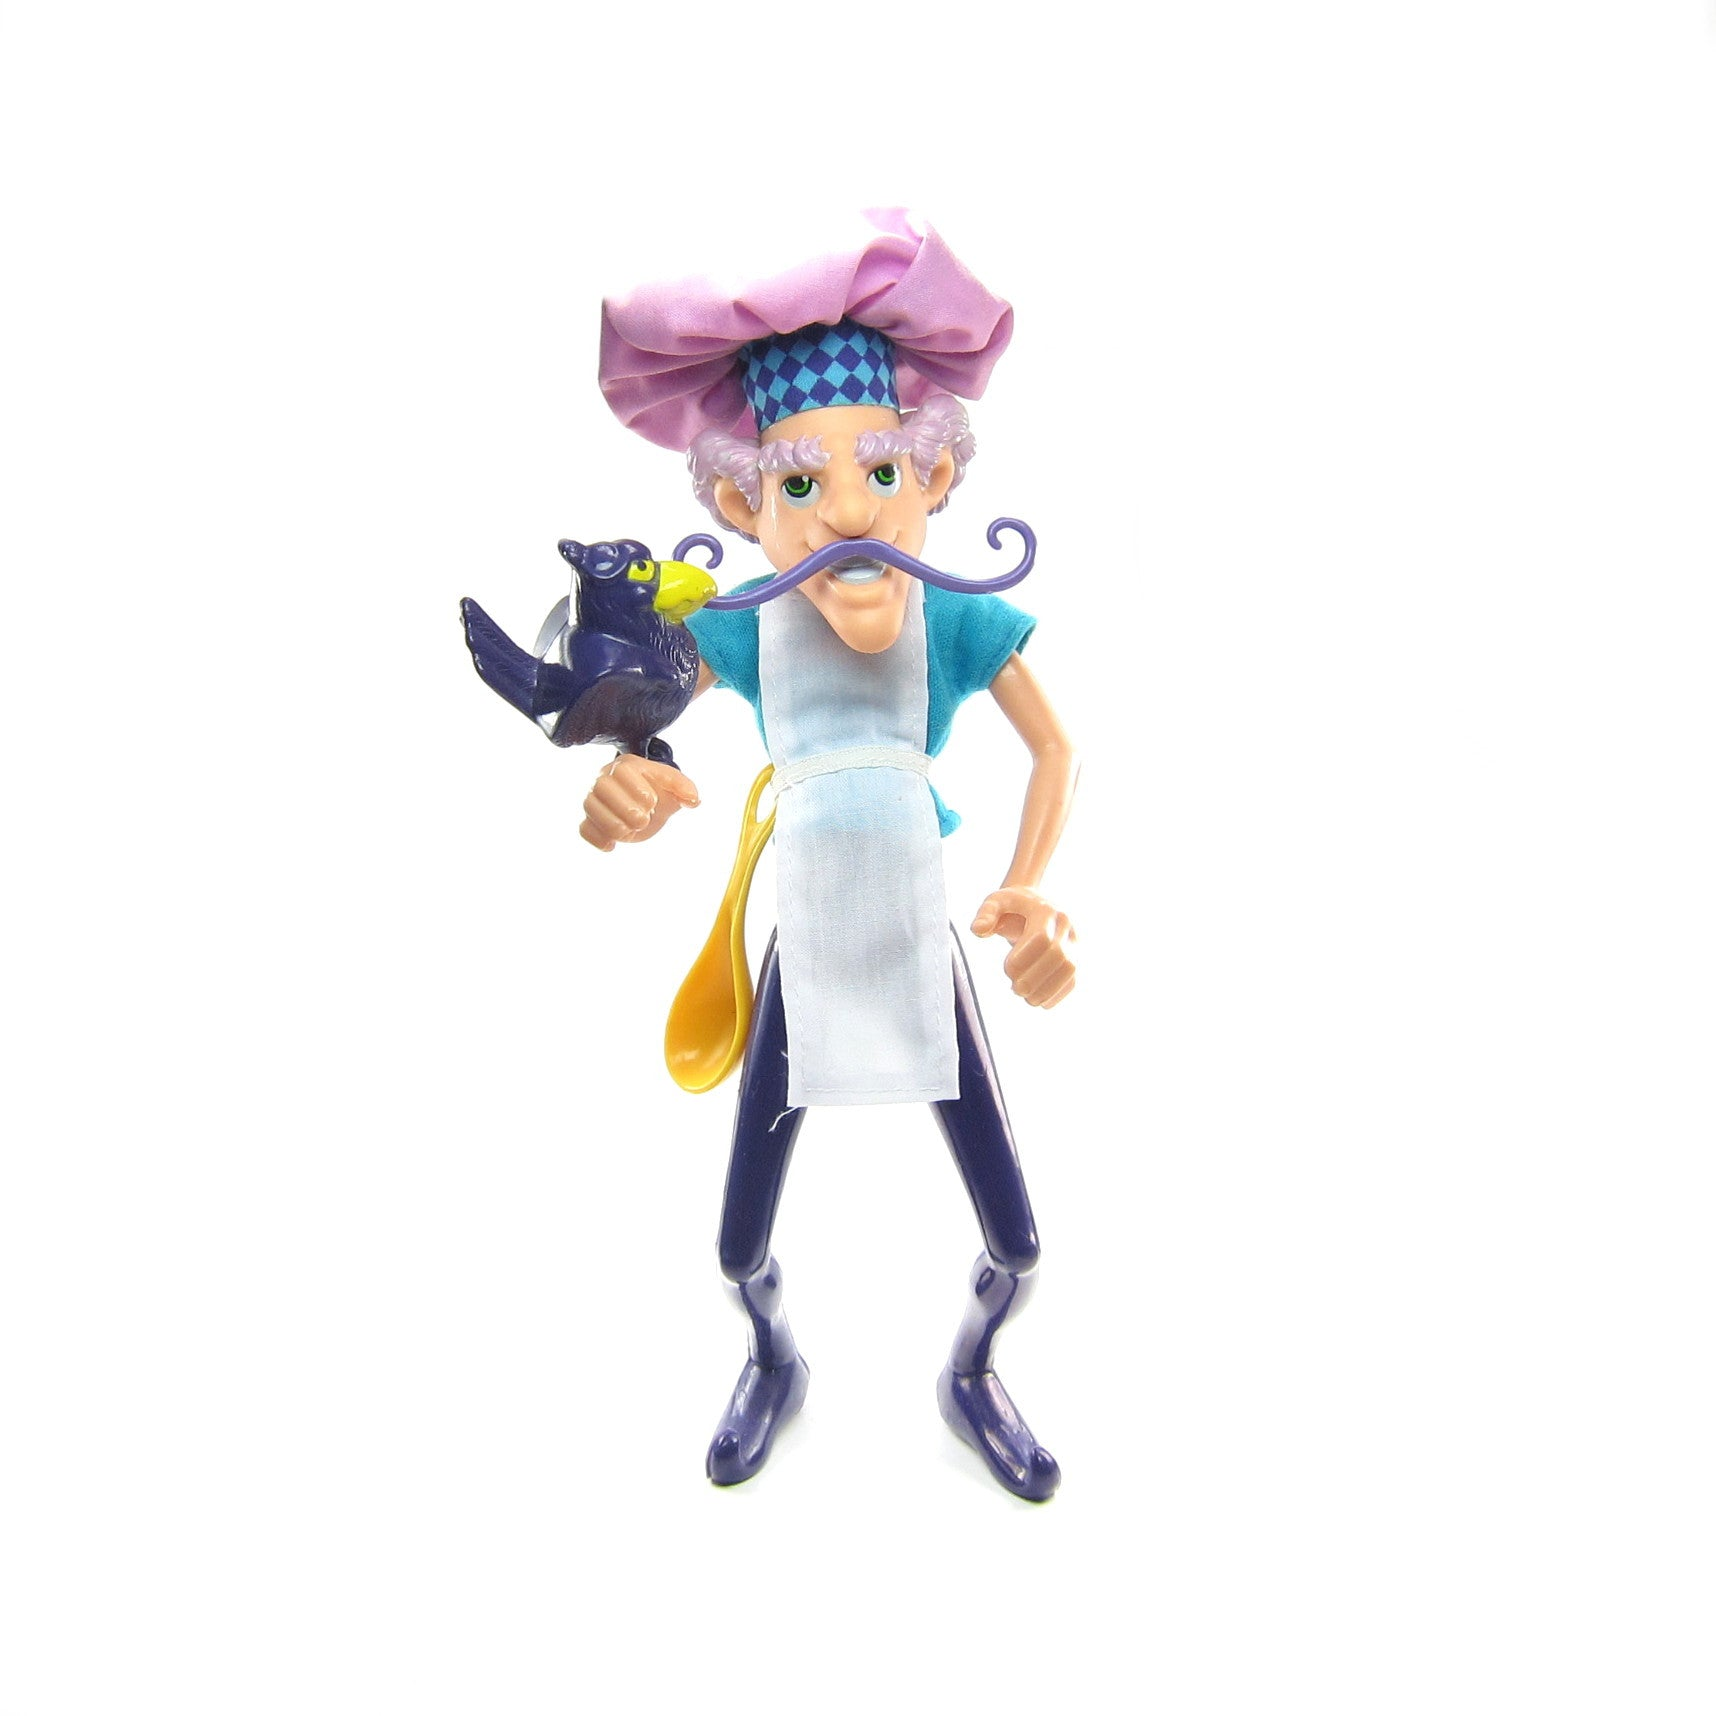 Purple Pie Man doll with spoon and Berry Bird pet